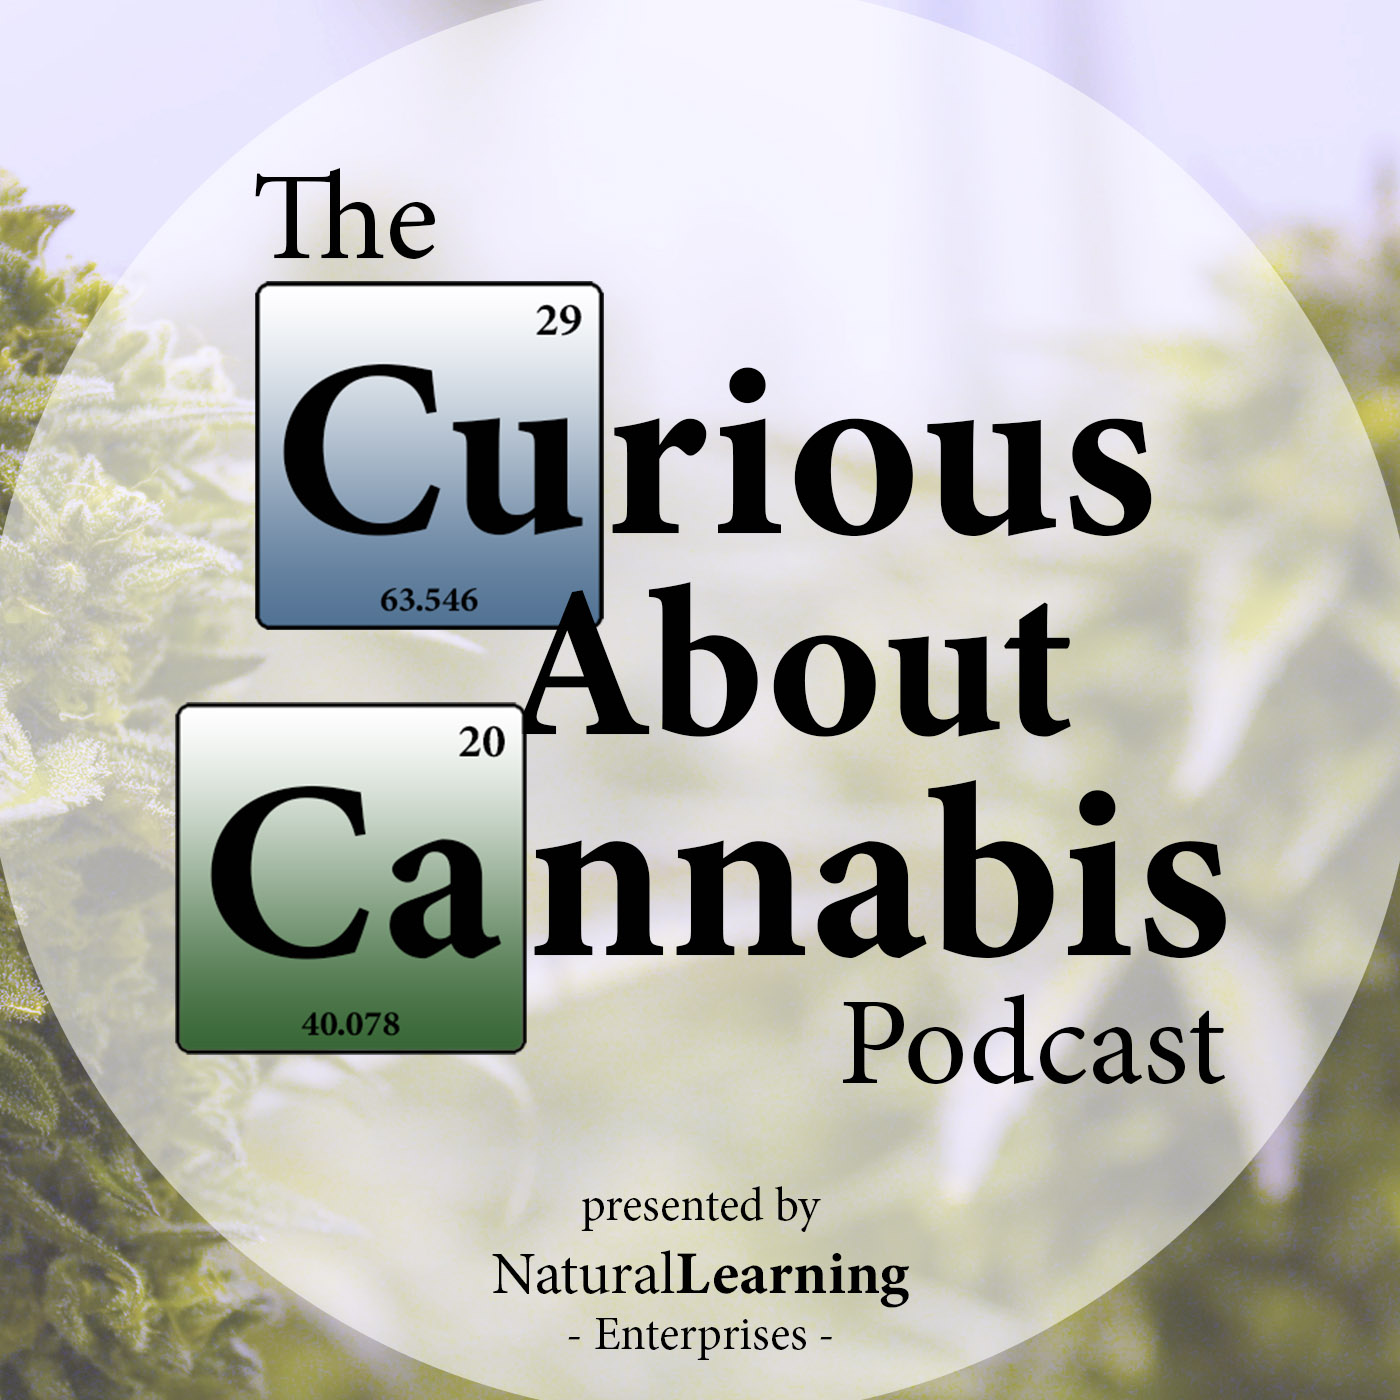 Linda Klumpers PhD on Cannify, Cannabinoid Pharmacology, Cannabis for Pain